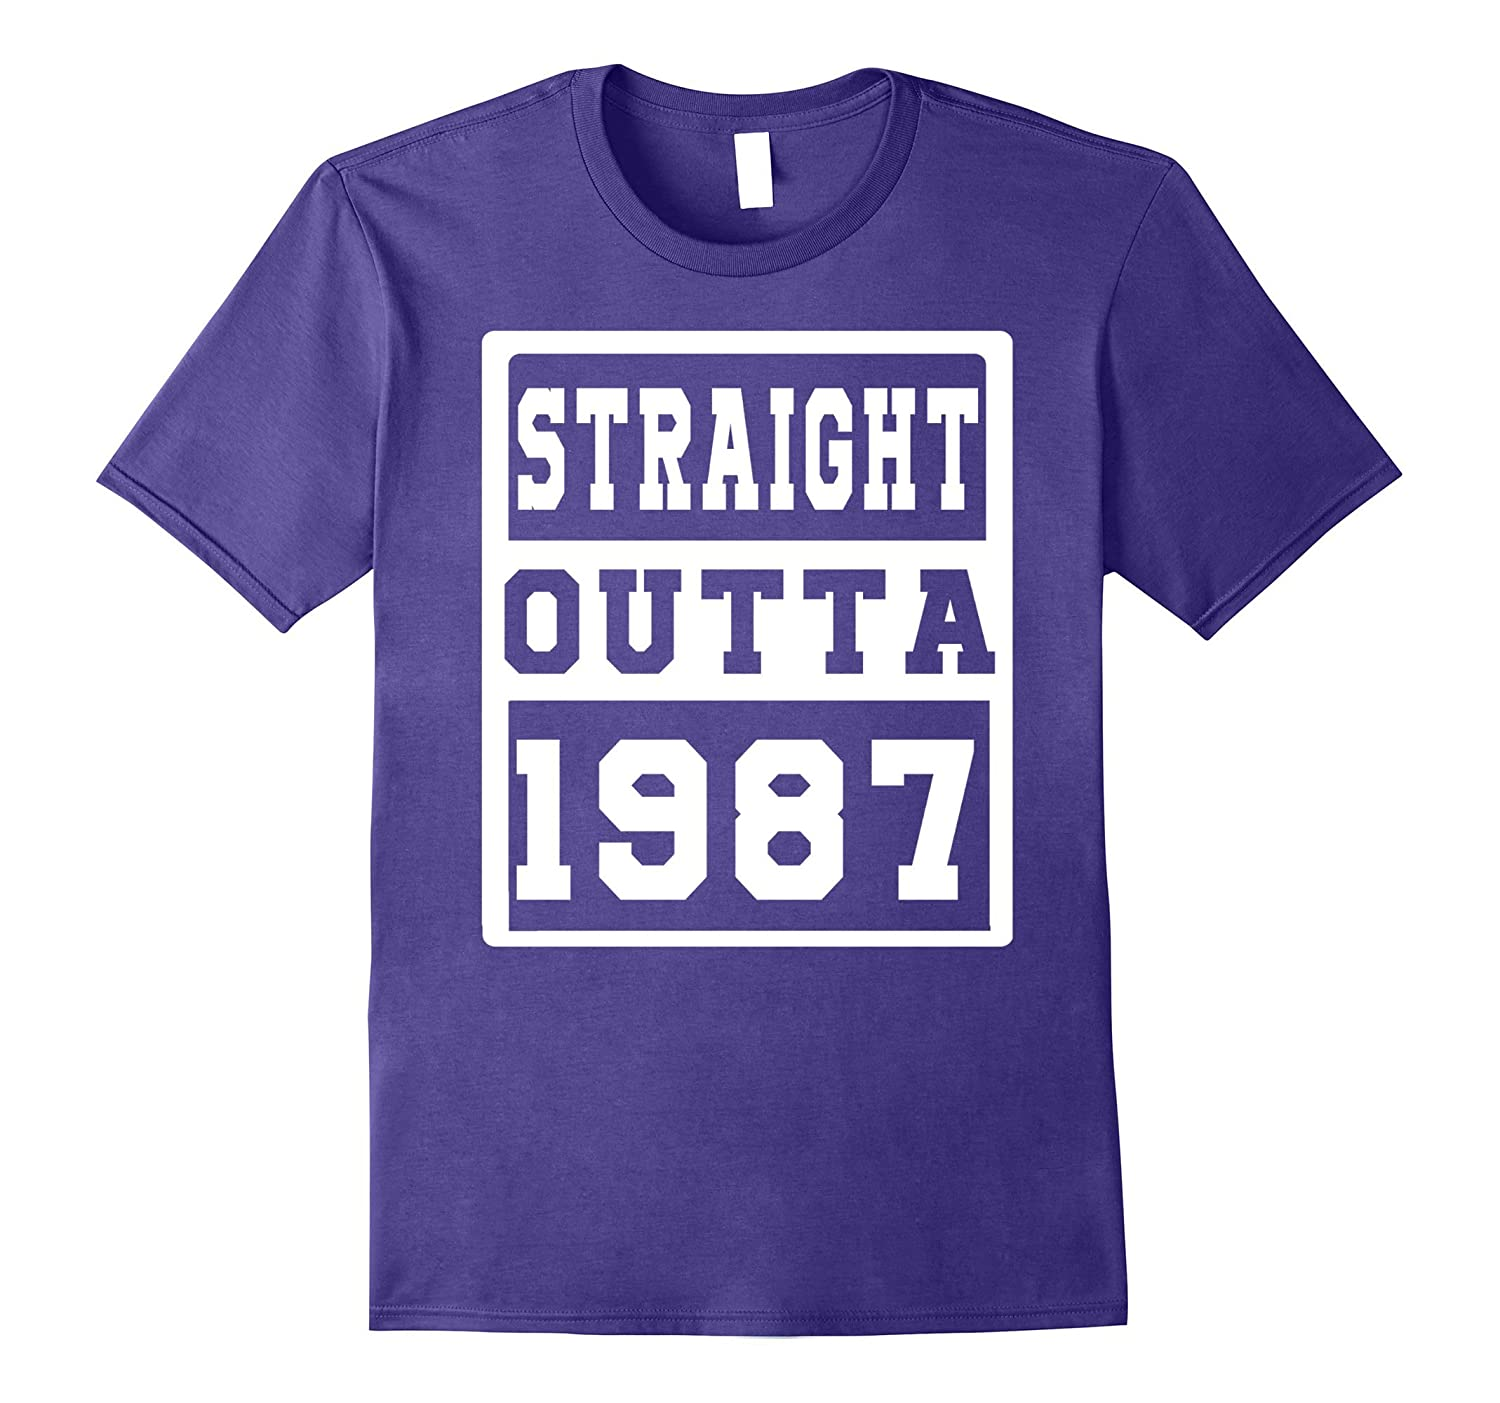 30 th Birthday Gift T-Shirt for love STRAIGHT OUTTA 1987-TH